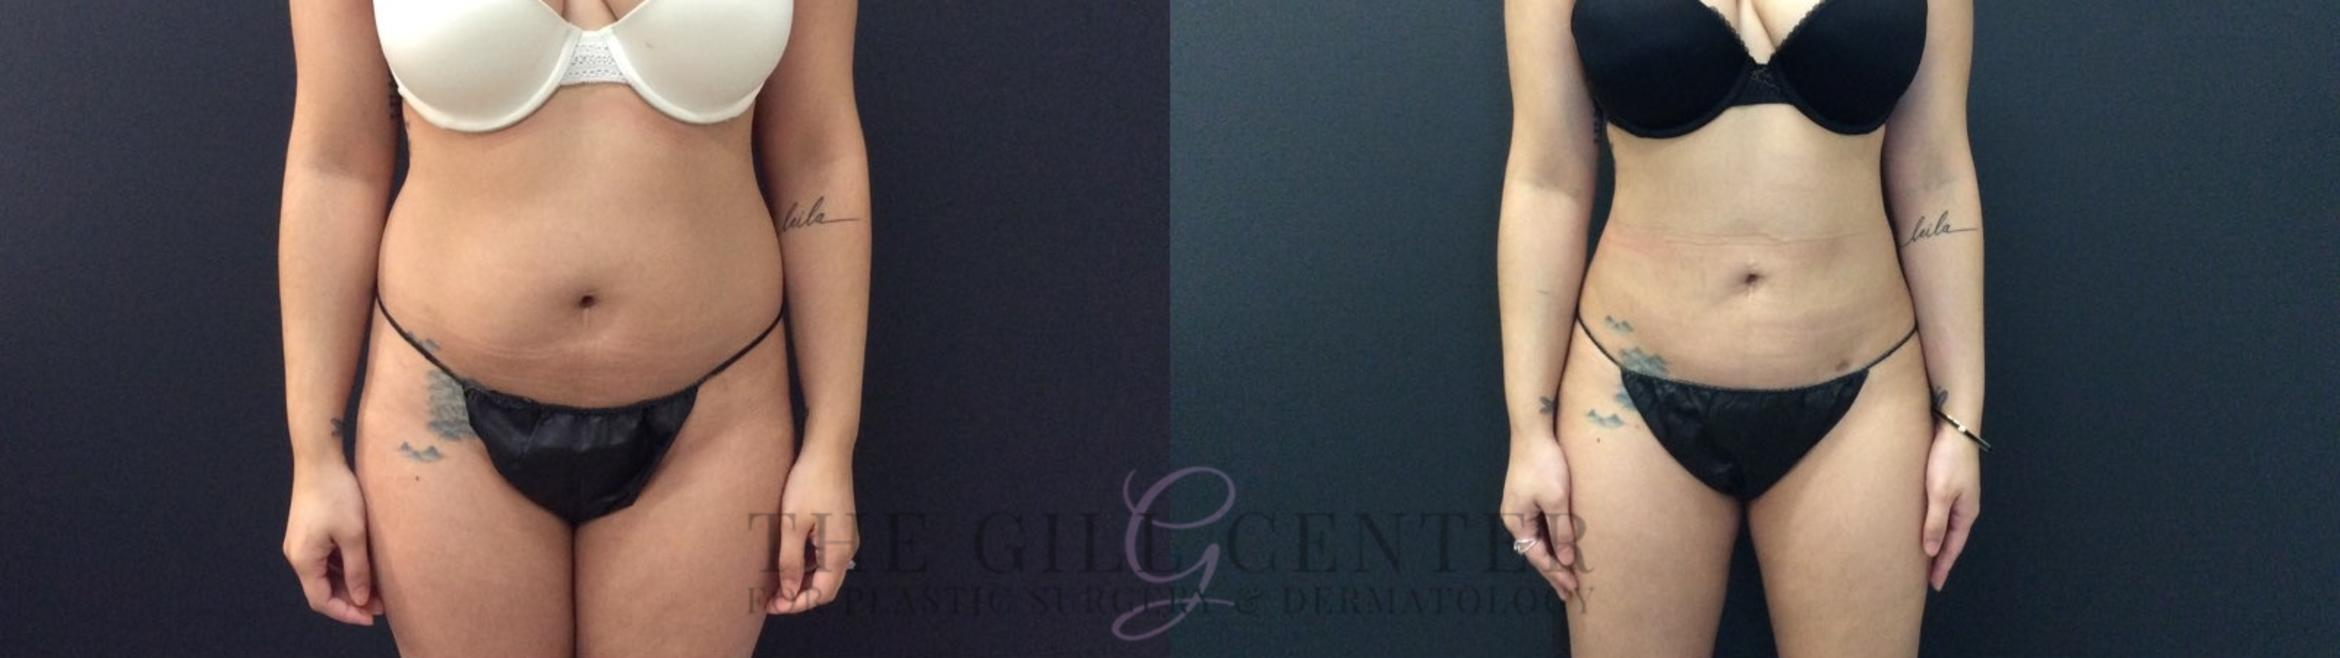 Liposuction Case 422 Before & After Front | Shenandoah, TX | The Gill Center for Plastic Surgery and Dermatology